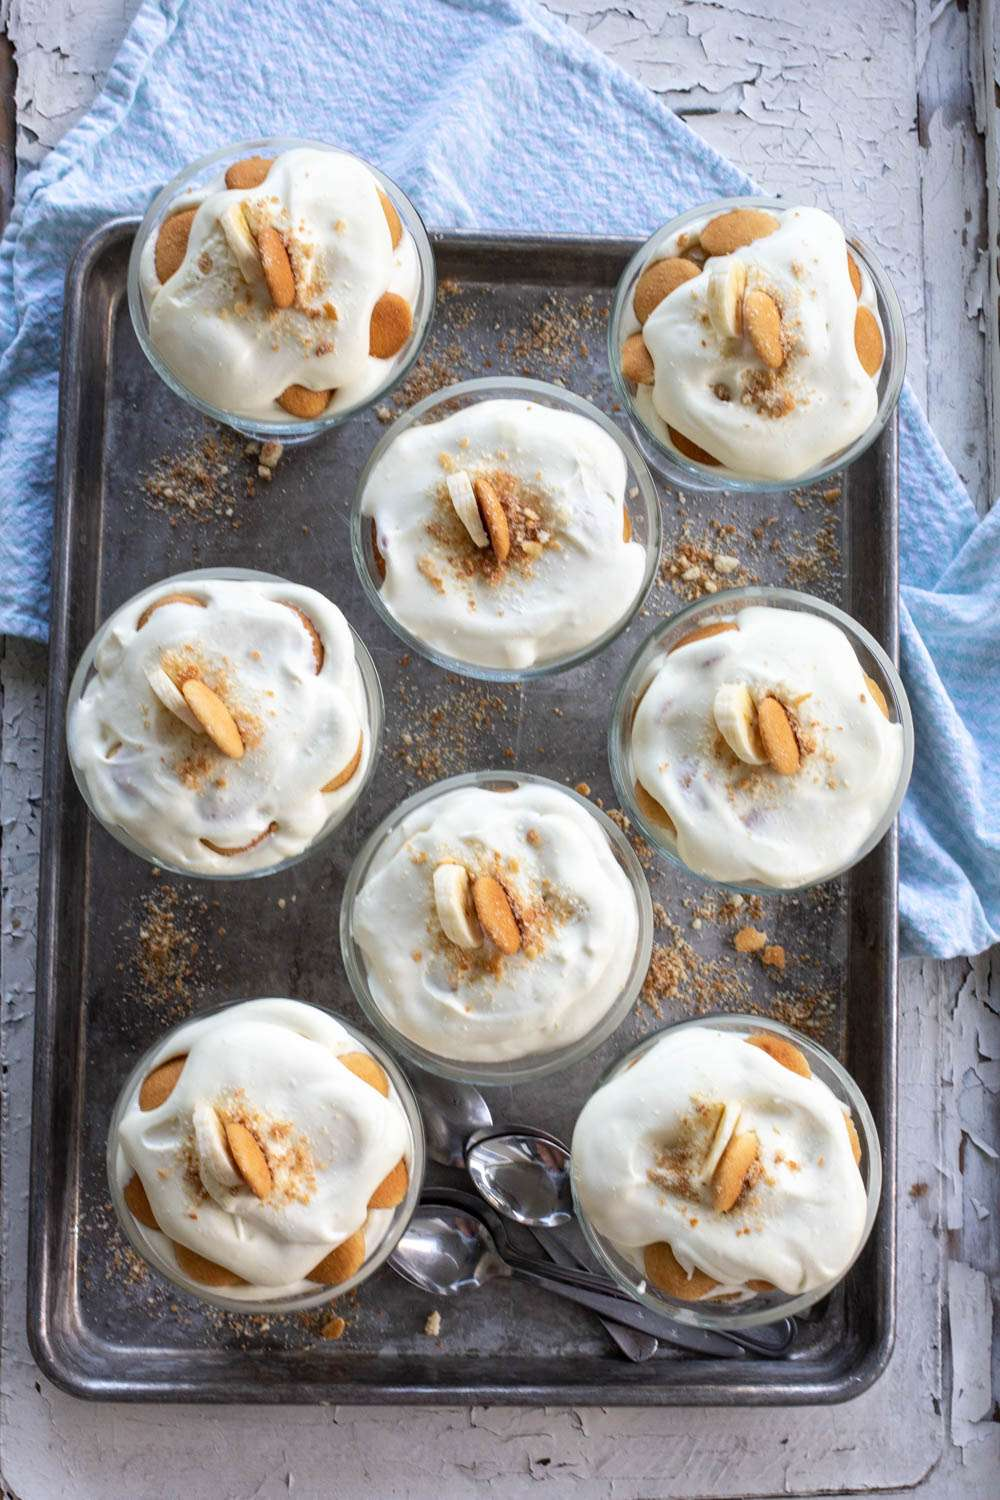 Magnolia Bakery Banana Pudding in glass bowls with spoons on cookie sheet. Looking down from top.